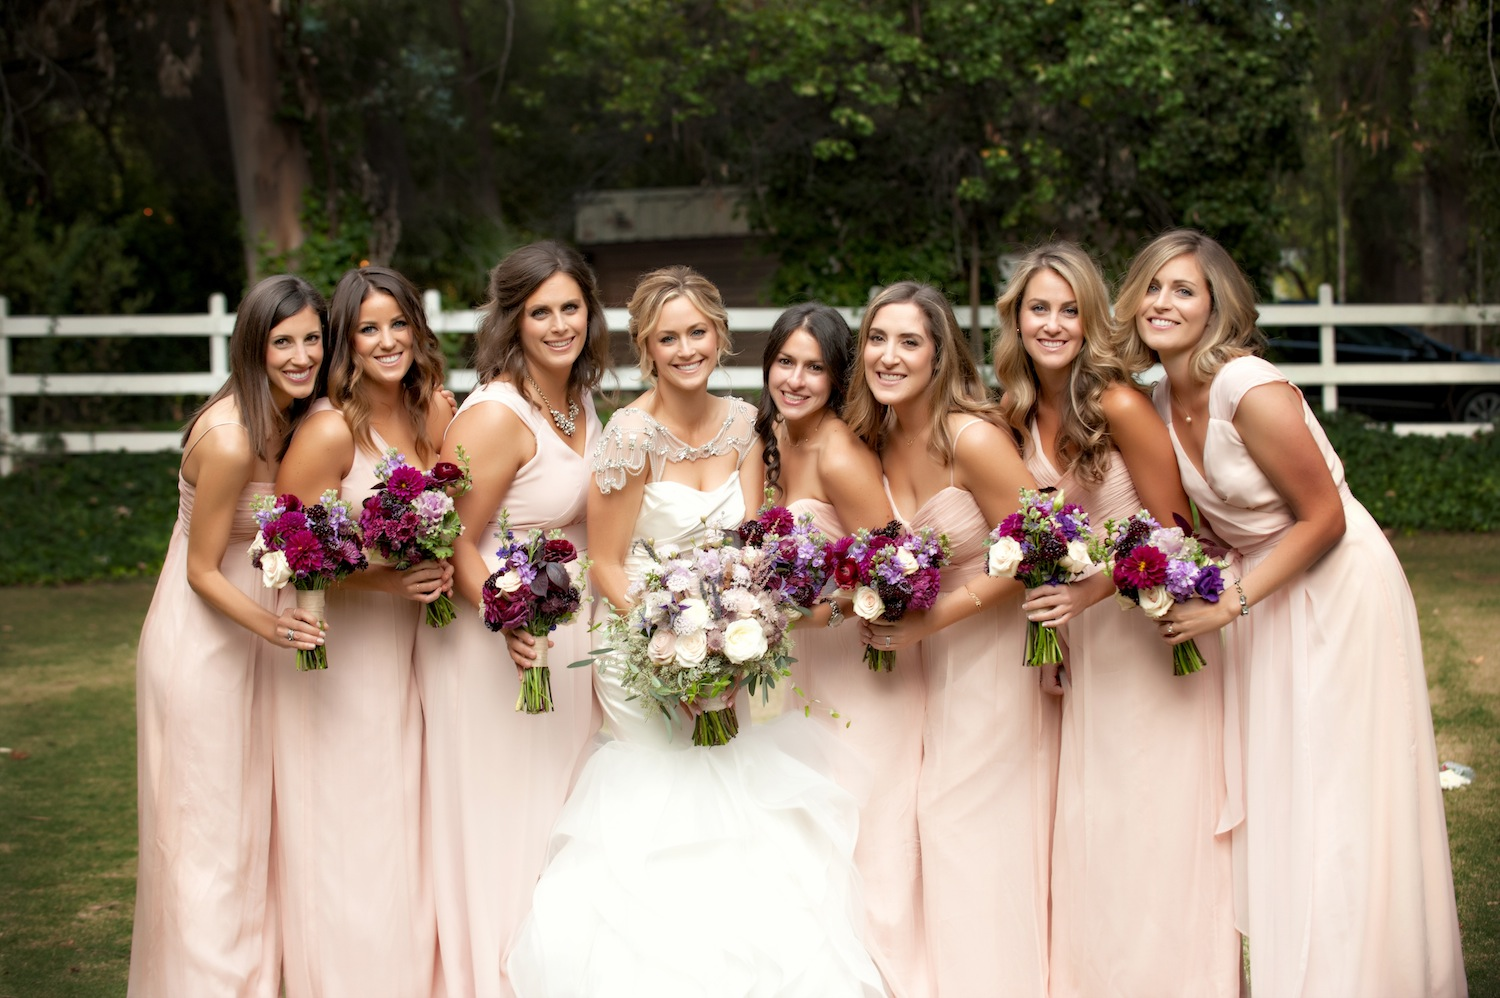 Bridesmaid dresses blush bridesmaid gowns from real weddings bride at calamigos ranch in malibu with blush bridesmaid dresses ombrellifo Images